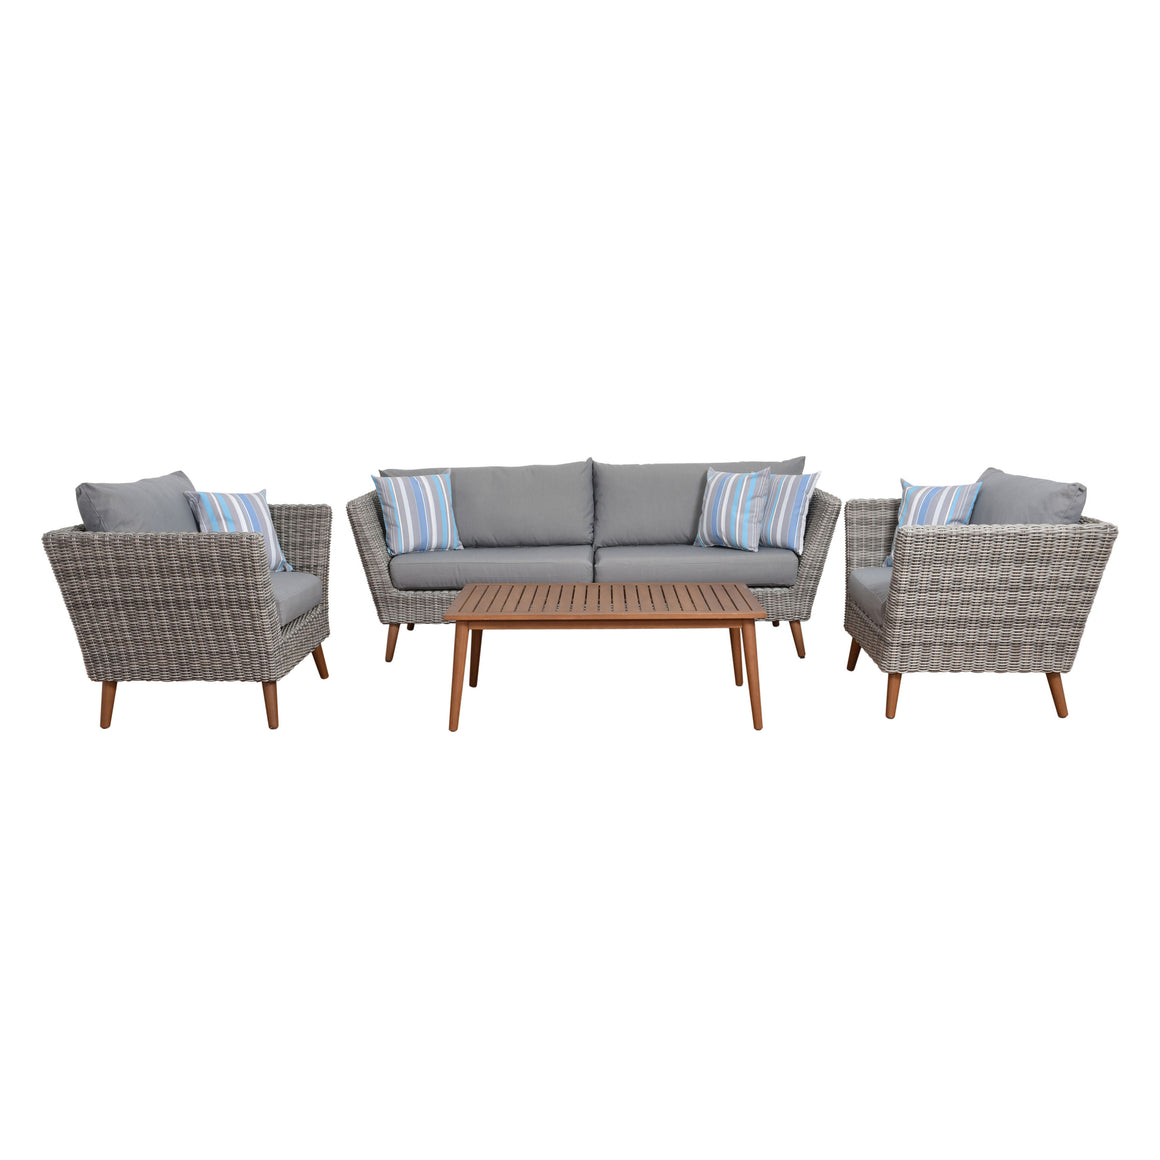 Amazonia Boston 4 Piece Conversation Set with Cushions , International Home Miami- grayburd